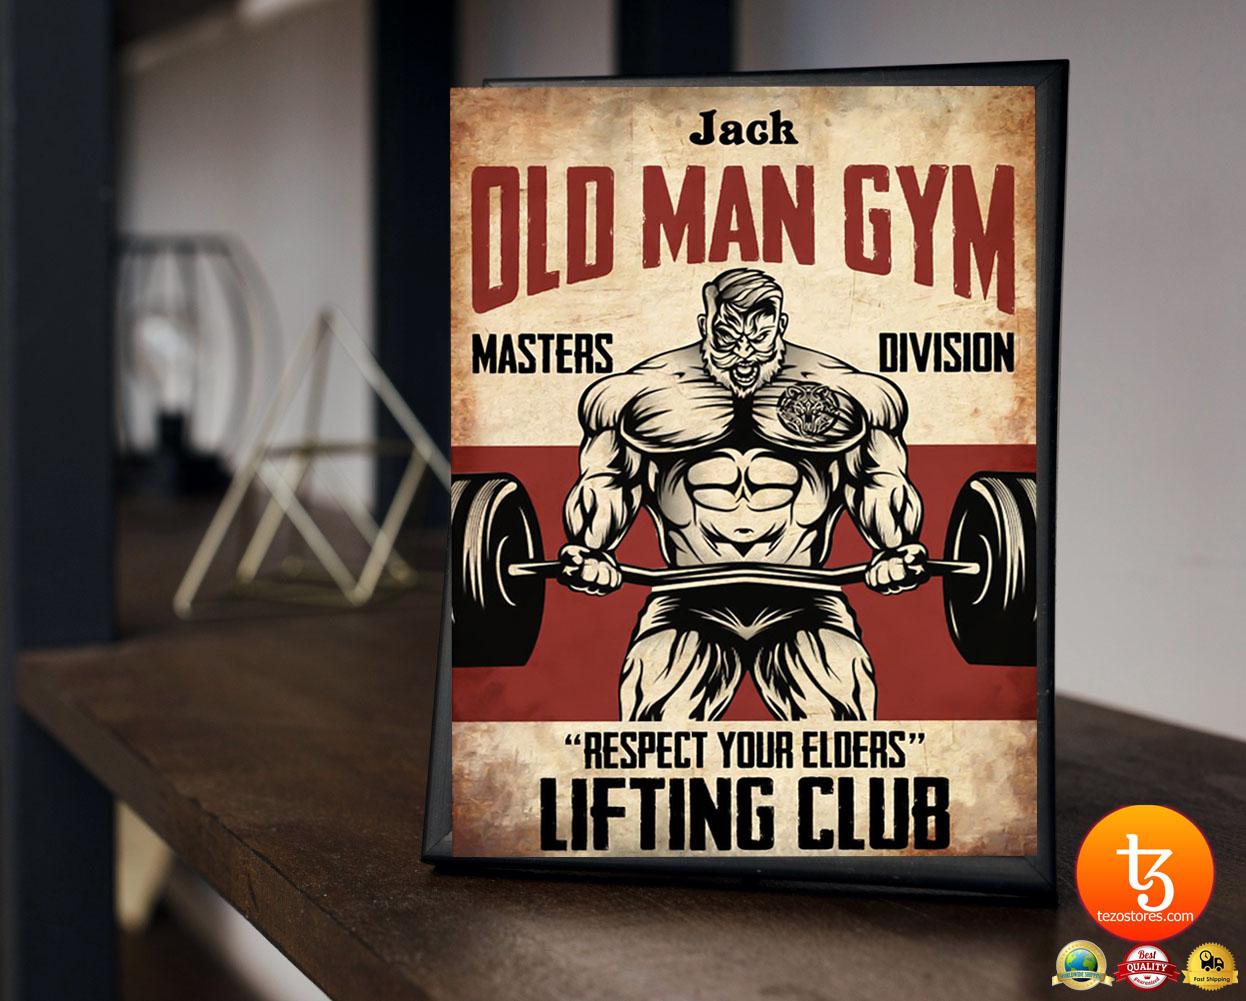 Old man gym masters division respect your elders lifting club poster 23